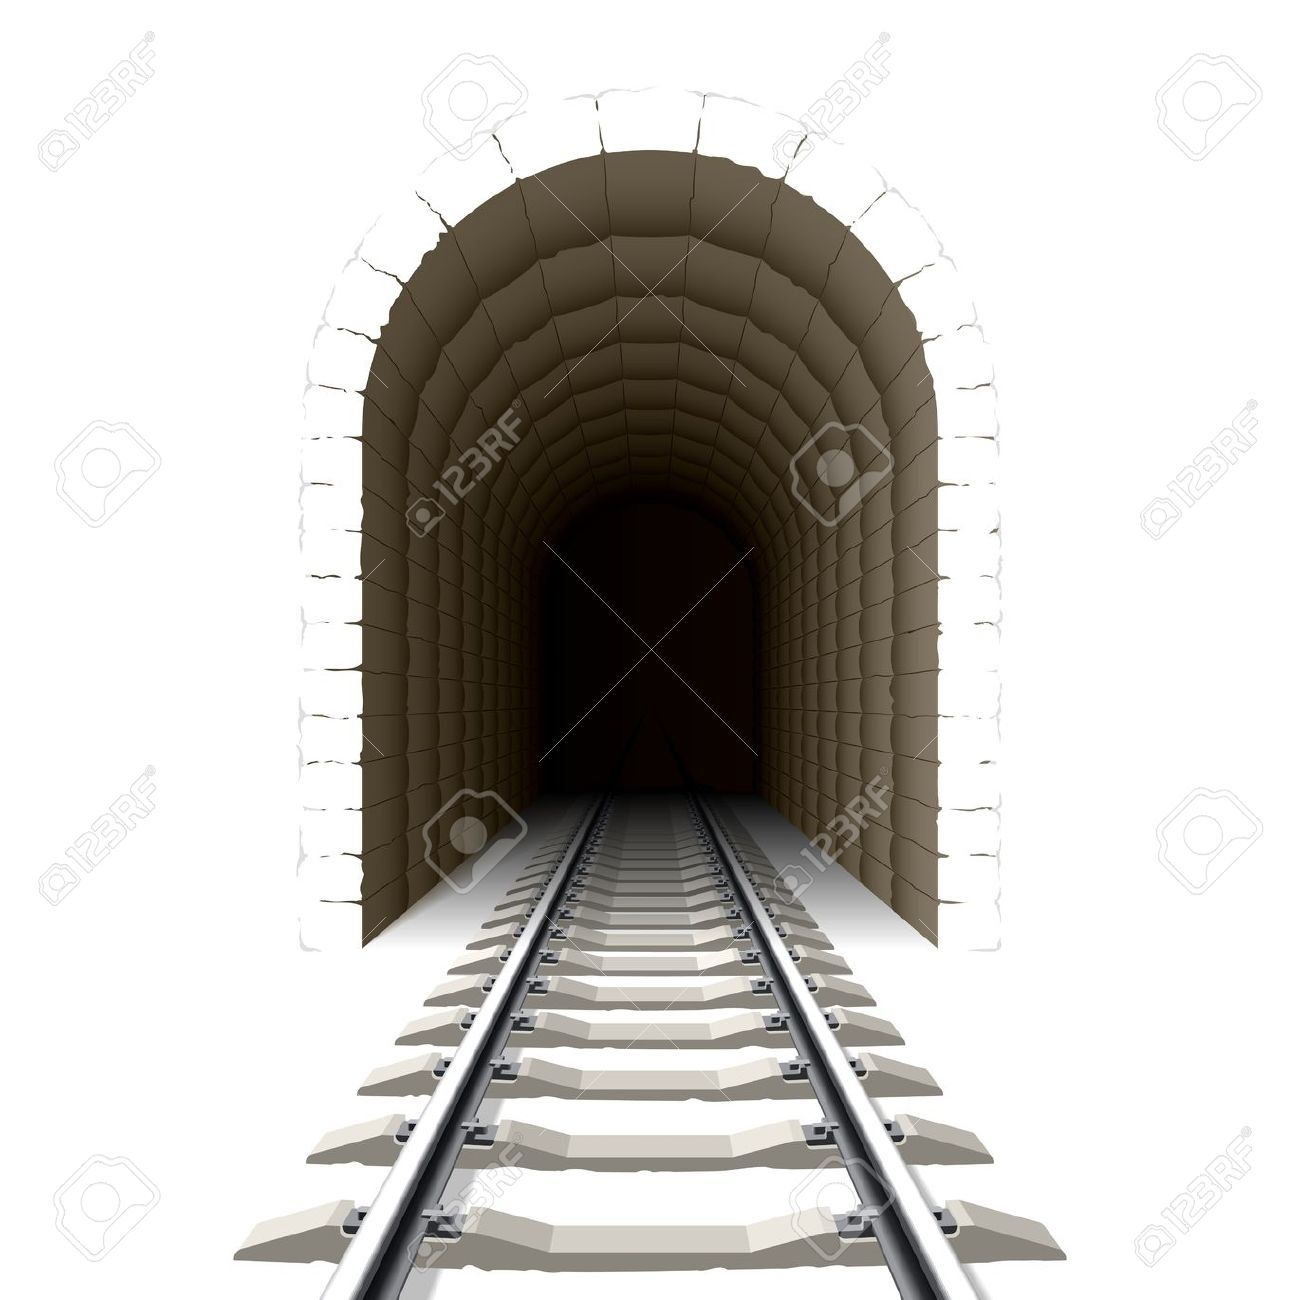 Train tunnel clipart.